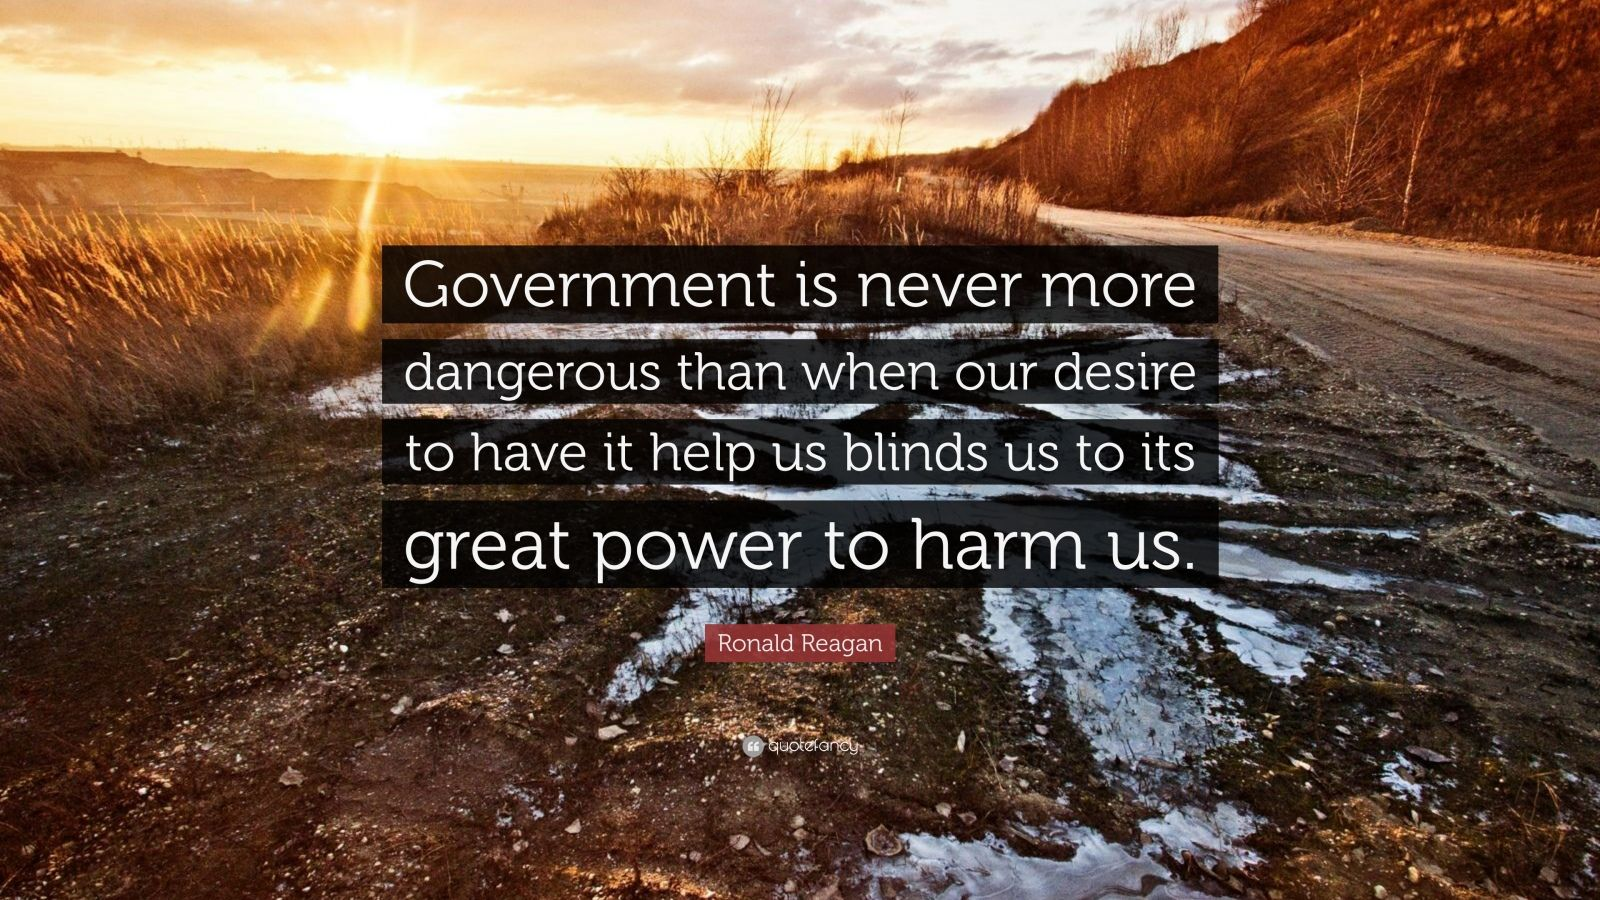 """Ronald Reagan Quote: """"Government is never more dangerous than when our desire to have it help us blinds us to its great power to harm us."""""""